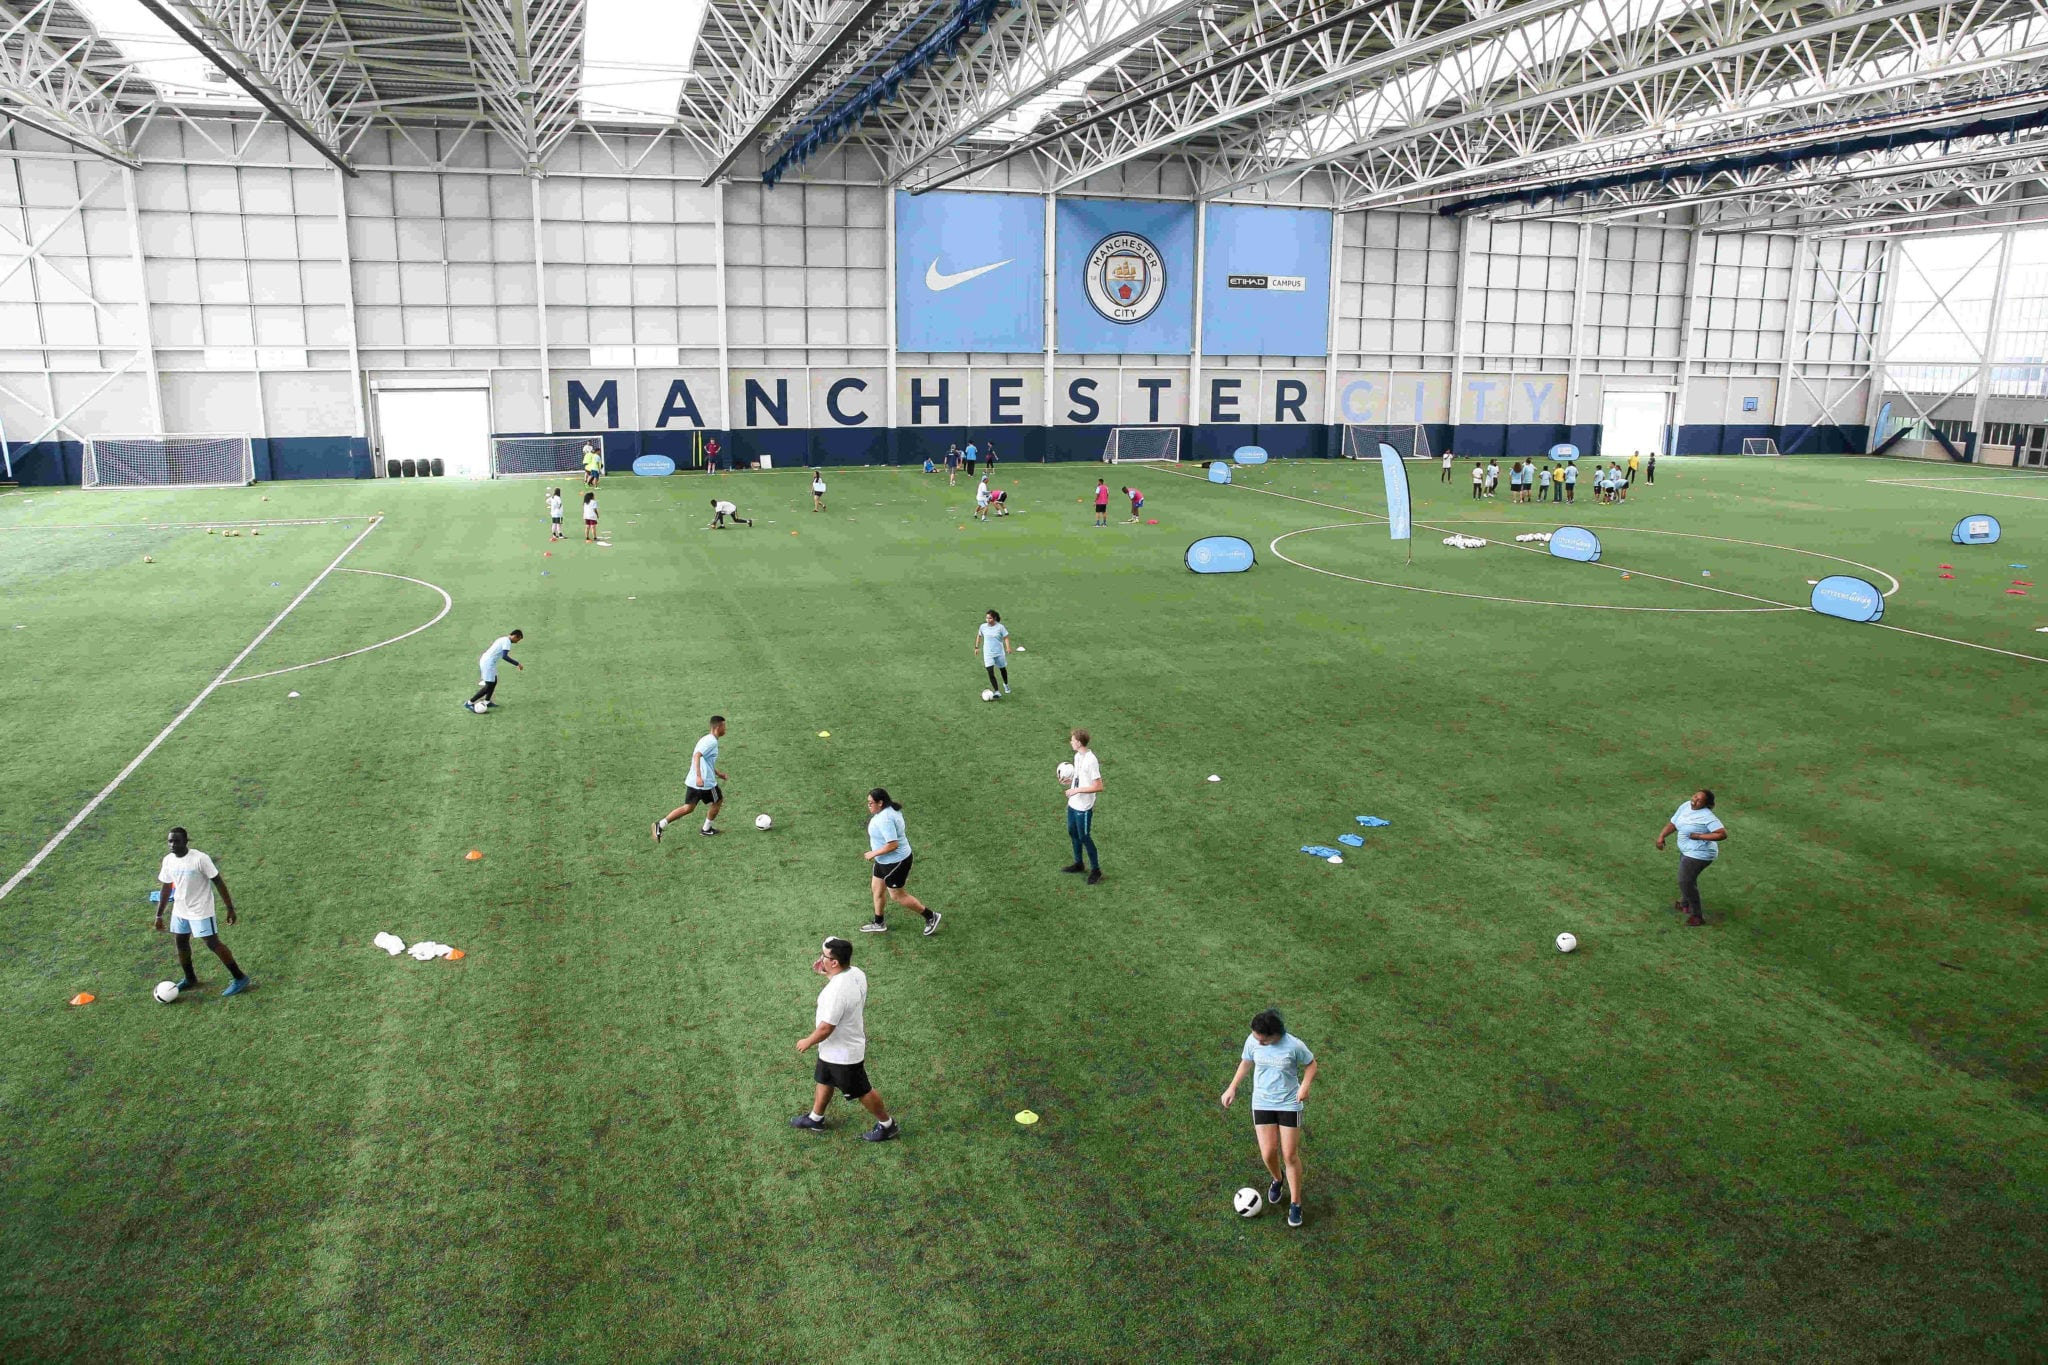 Day 1 Training Session at Manchester City